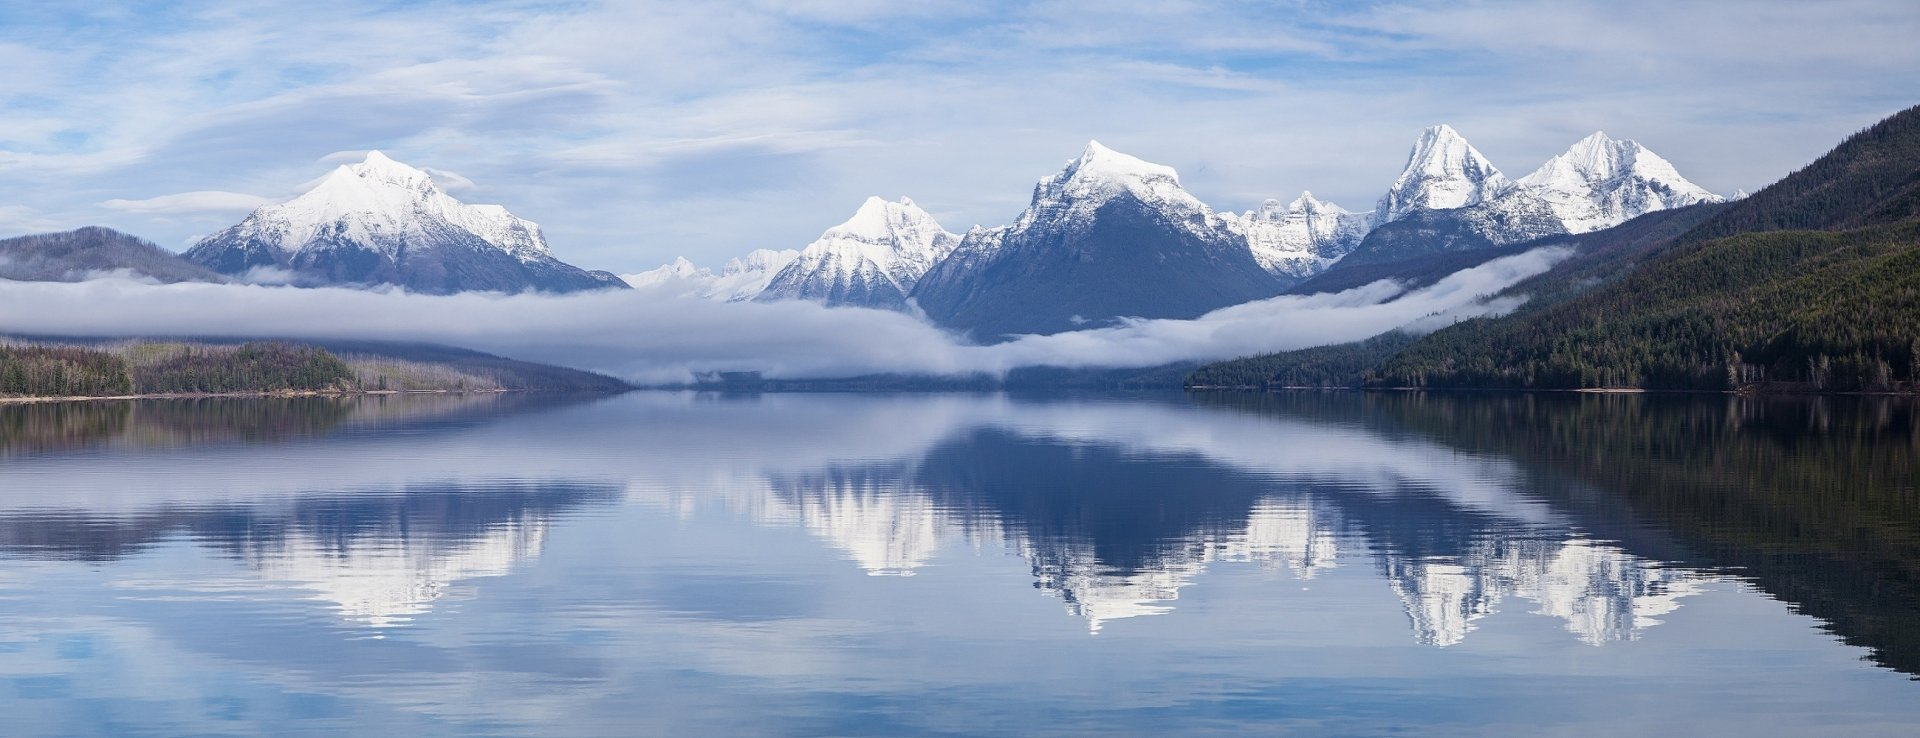 Iphone 5 Panorama Wallpaper Lake Mcdonald Glacier National Park Montana Usa Wallpaper